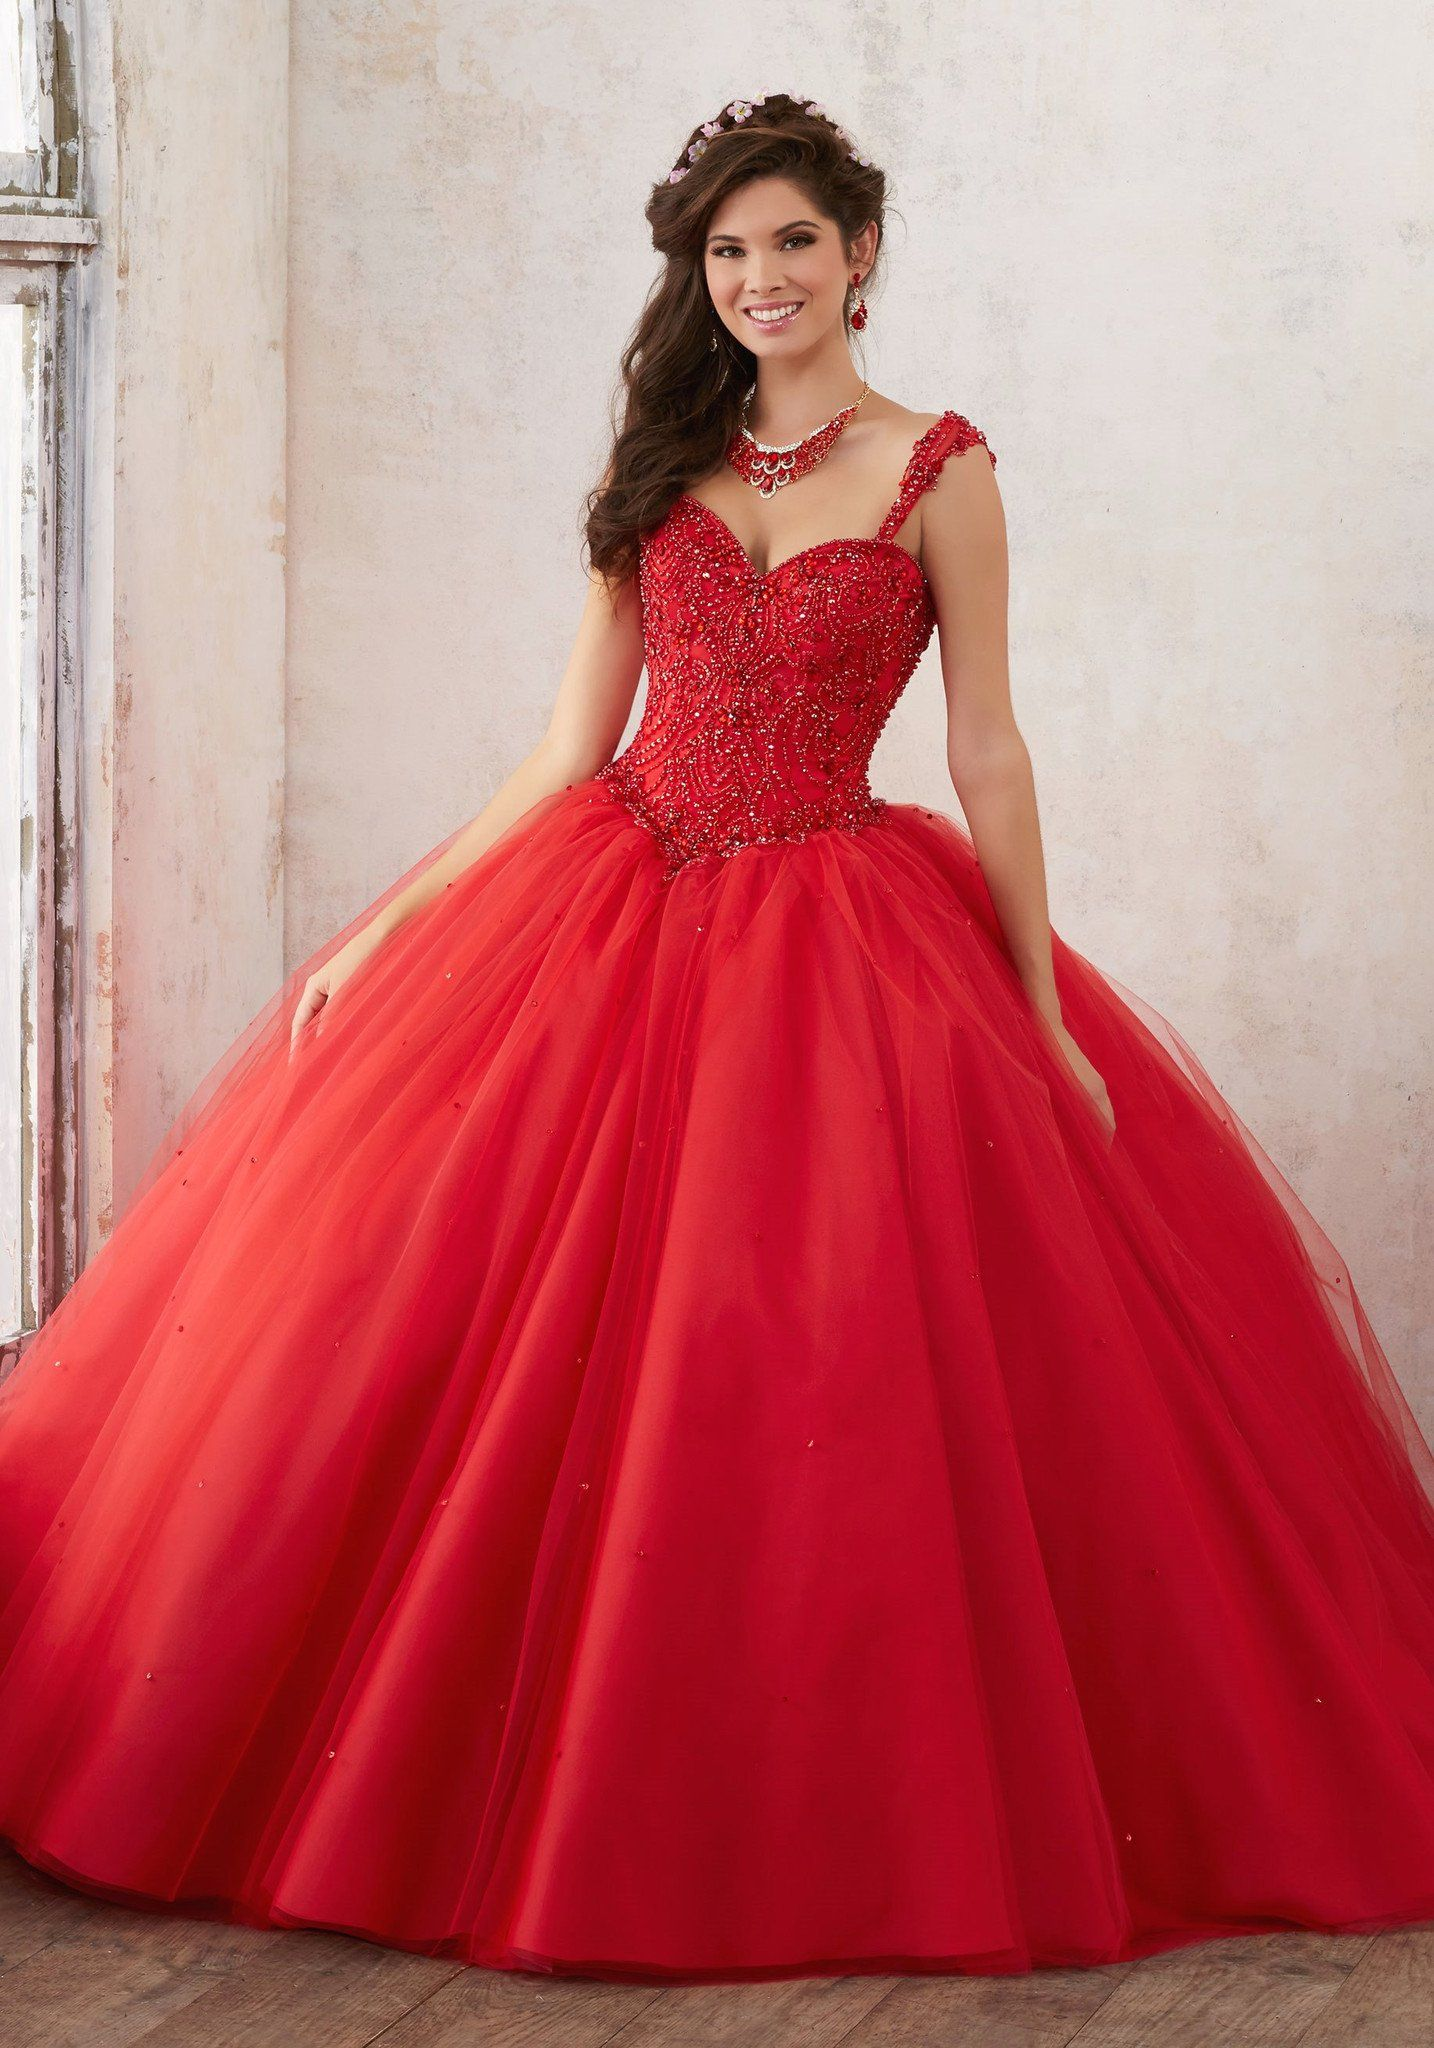 Beaded Sweetheart Quinceanera Dress by Mori Lee Valencia 60018 in ... 19ad45ff7af4